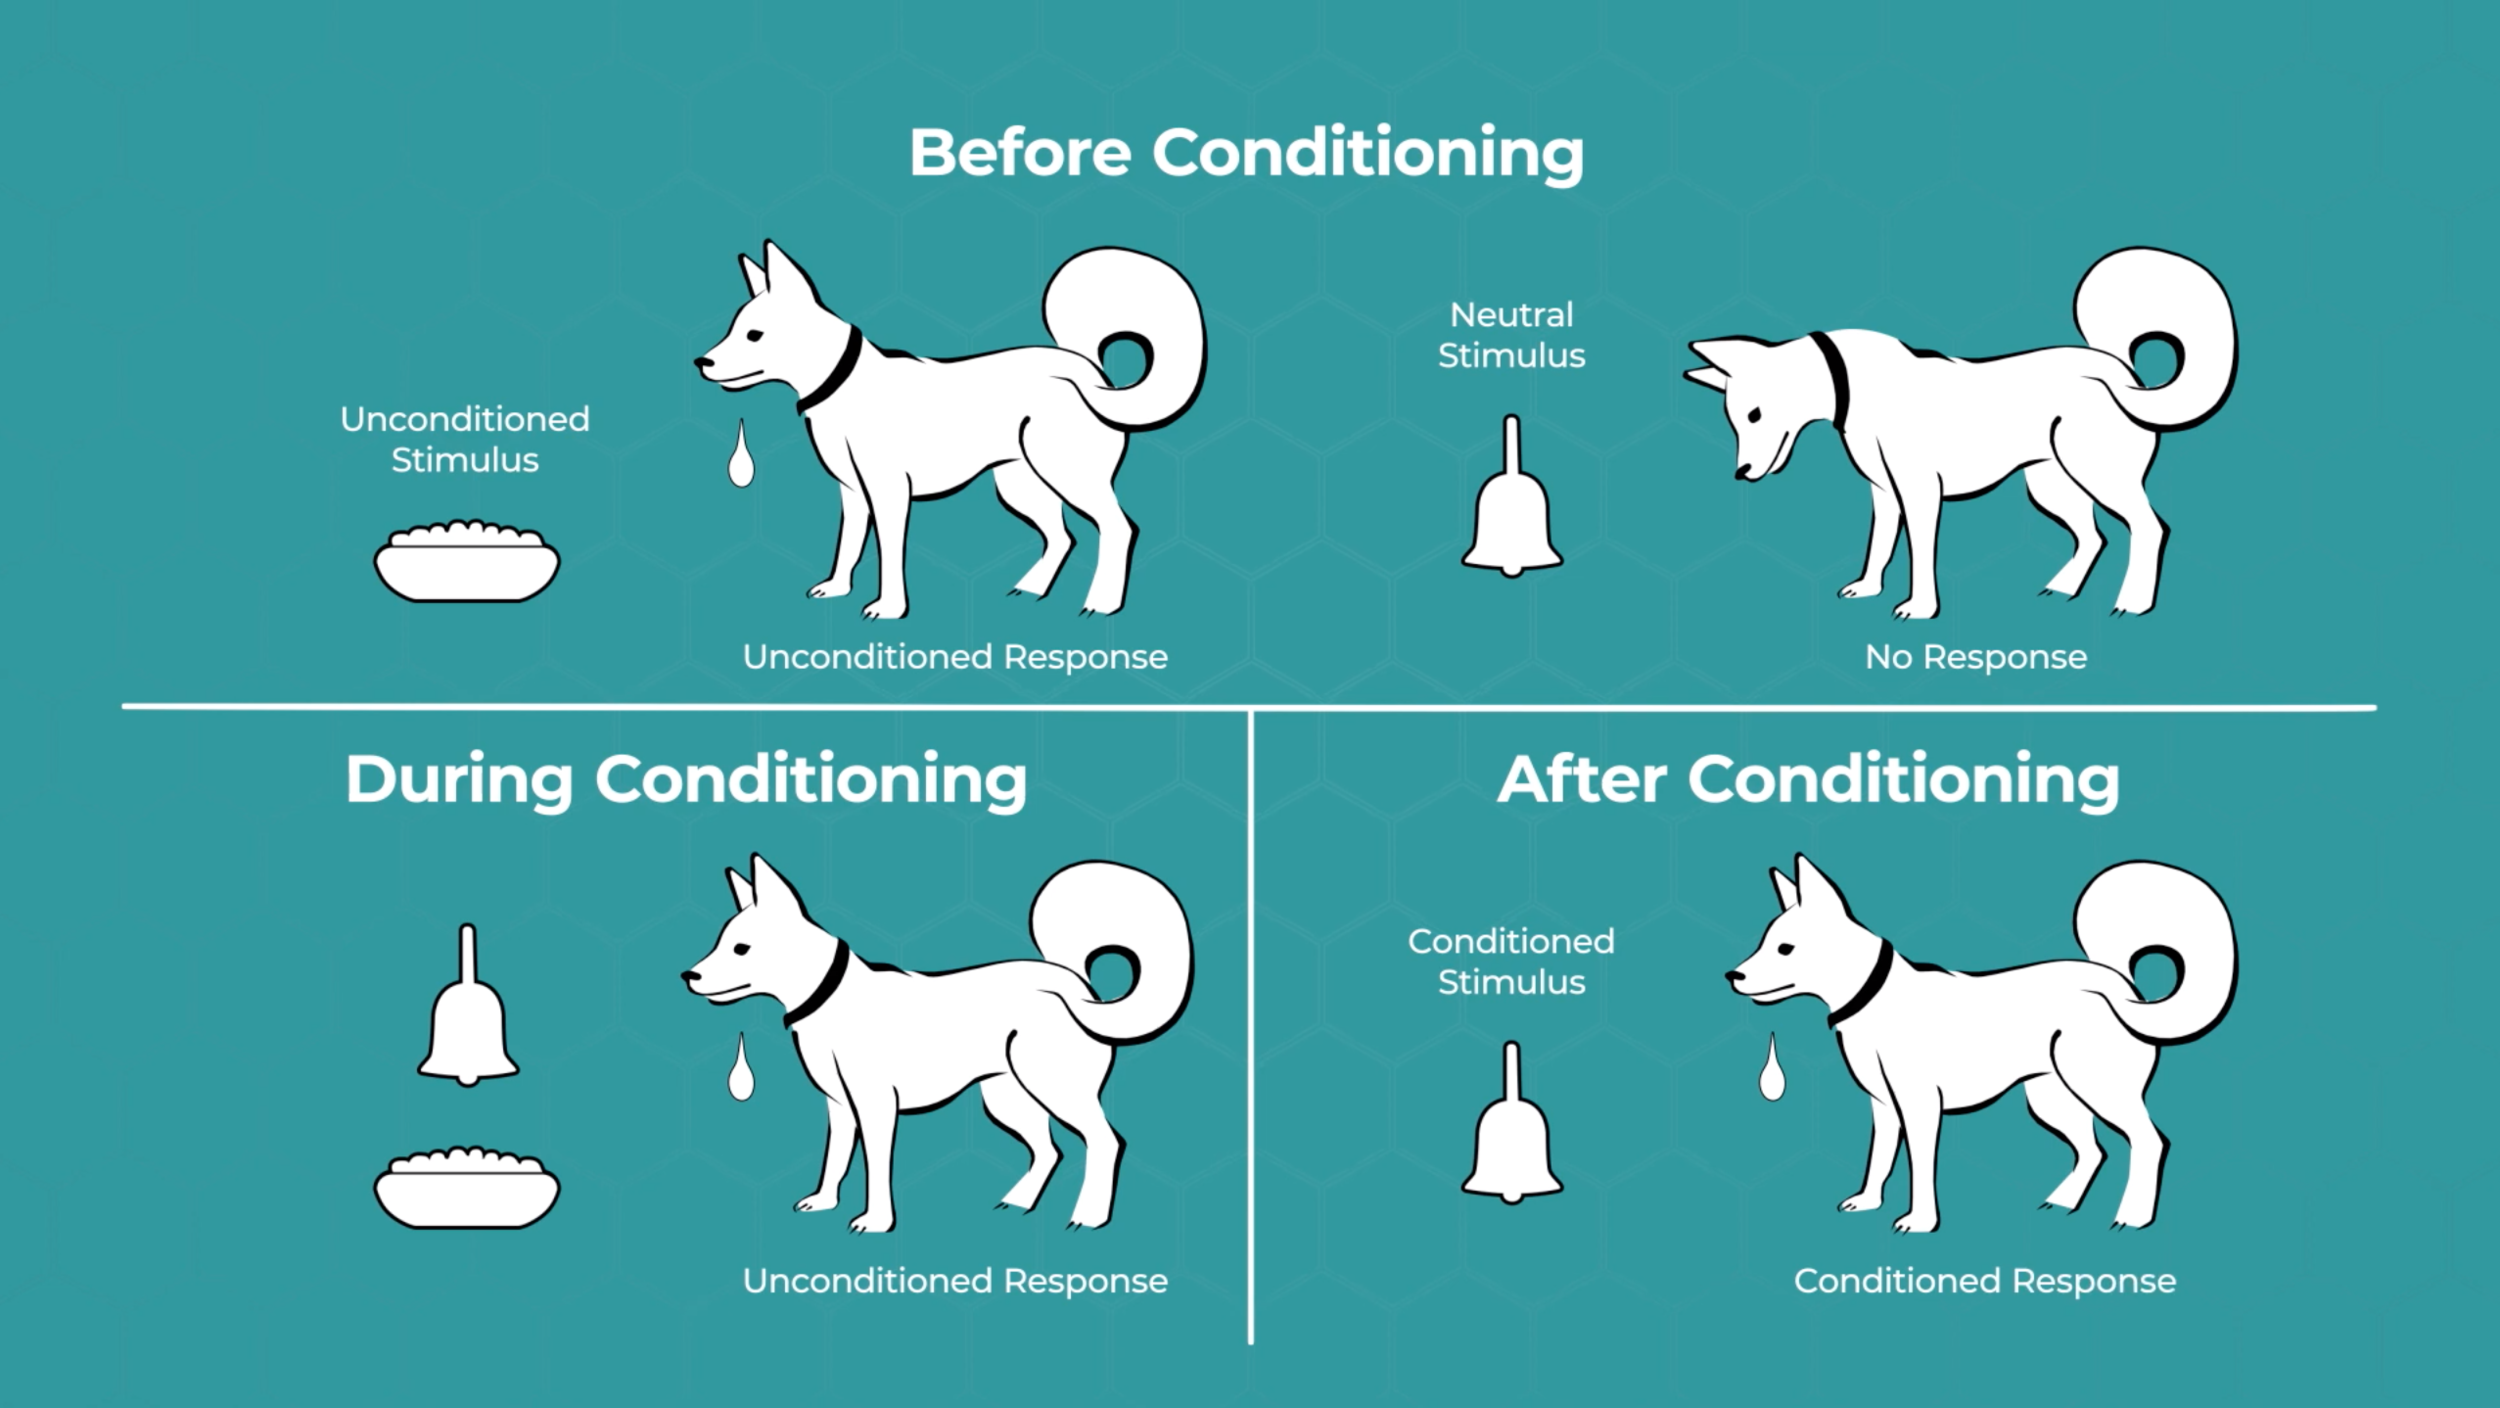 Supportive : This visual helps students make connections between the verbal components and visual representations. Images of a dog are paired with a concept.